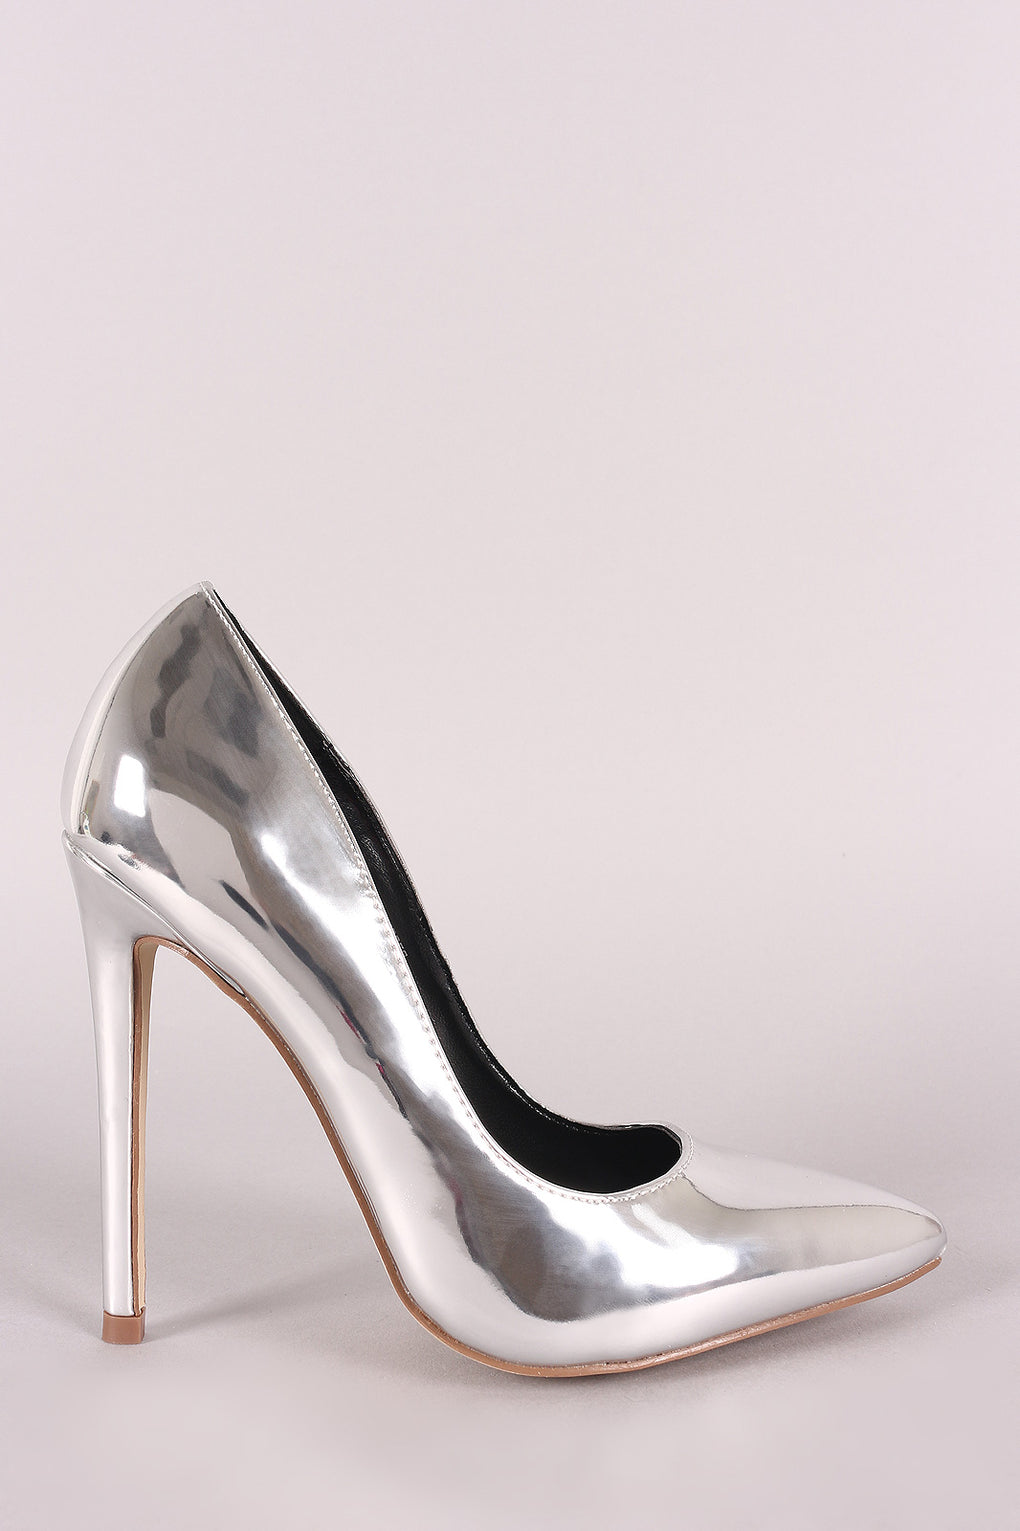 Shiny Patent Pointy Toe Stiletto Pump - Danish Fashion & Living Online Store SALE